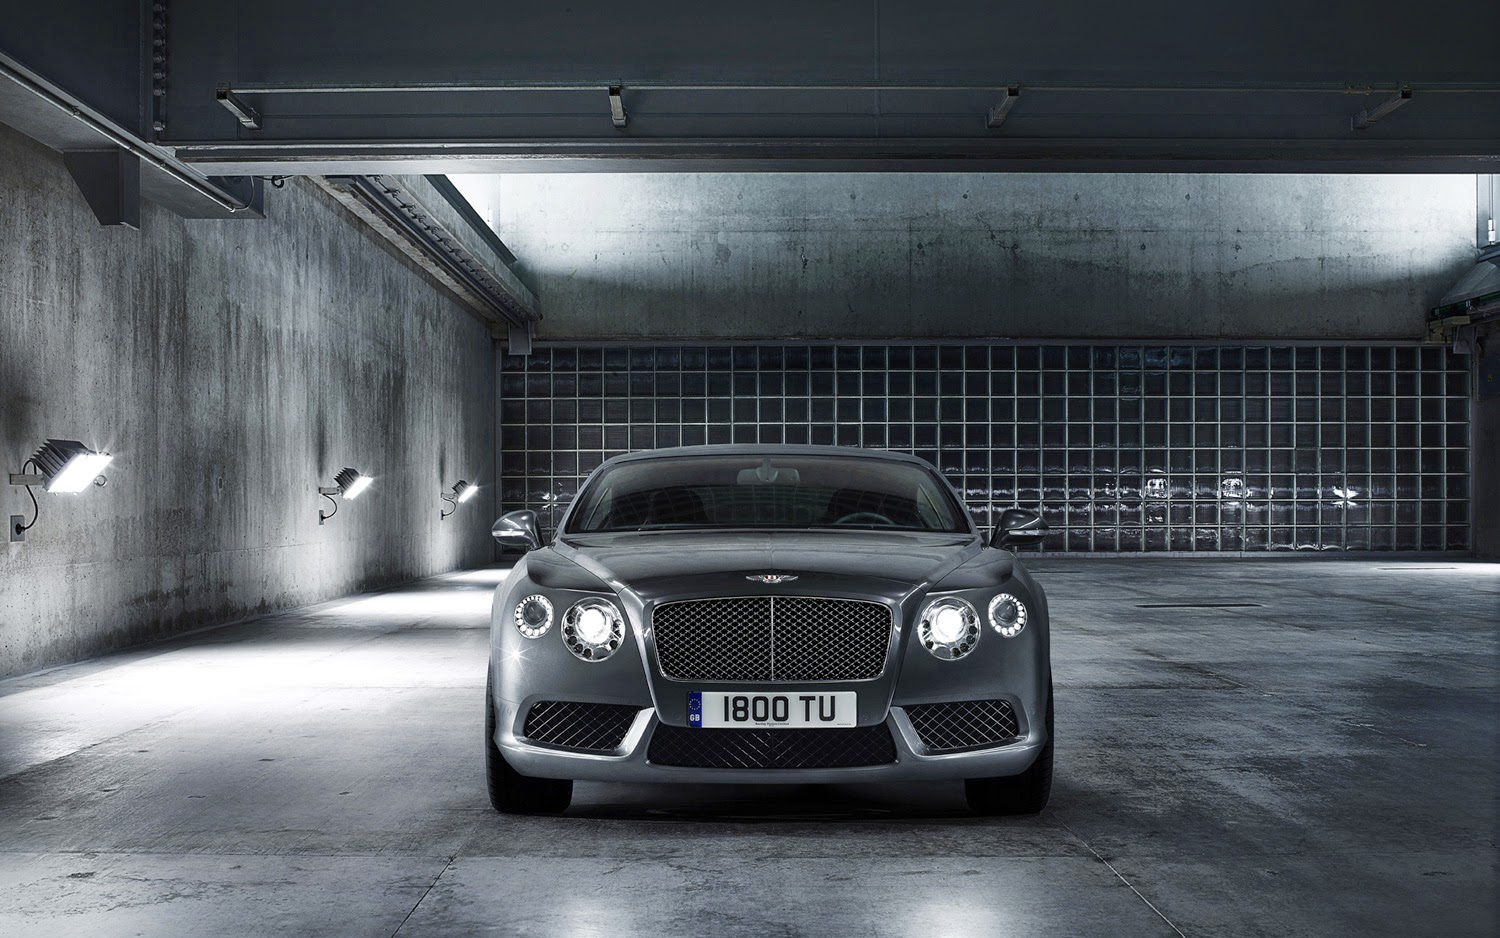 Cars of my dreams bentley continental gt the portuguese gentleman the continental gt profile is as characteristic as in the beginning and imposing and classic matrix radiator grille keeps having the same charm and vanachro Image collections